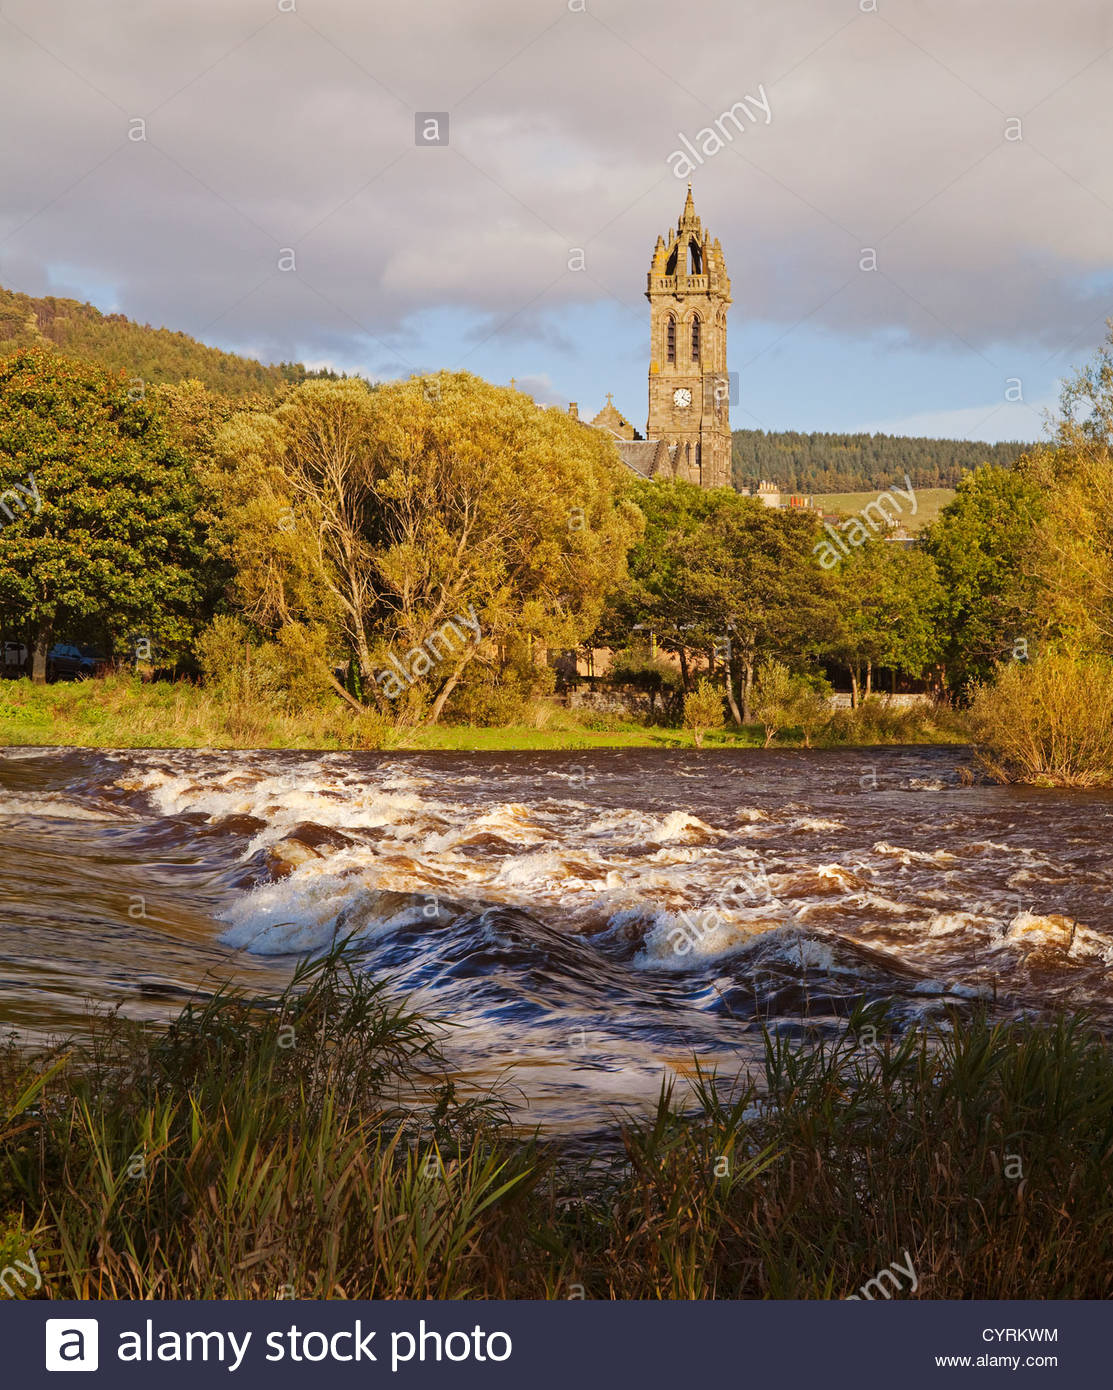 The Cauld (weir) on the River Tweed and Peebles Parish Church